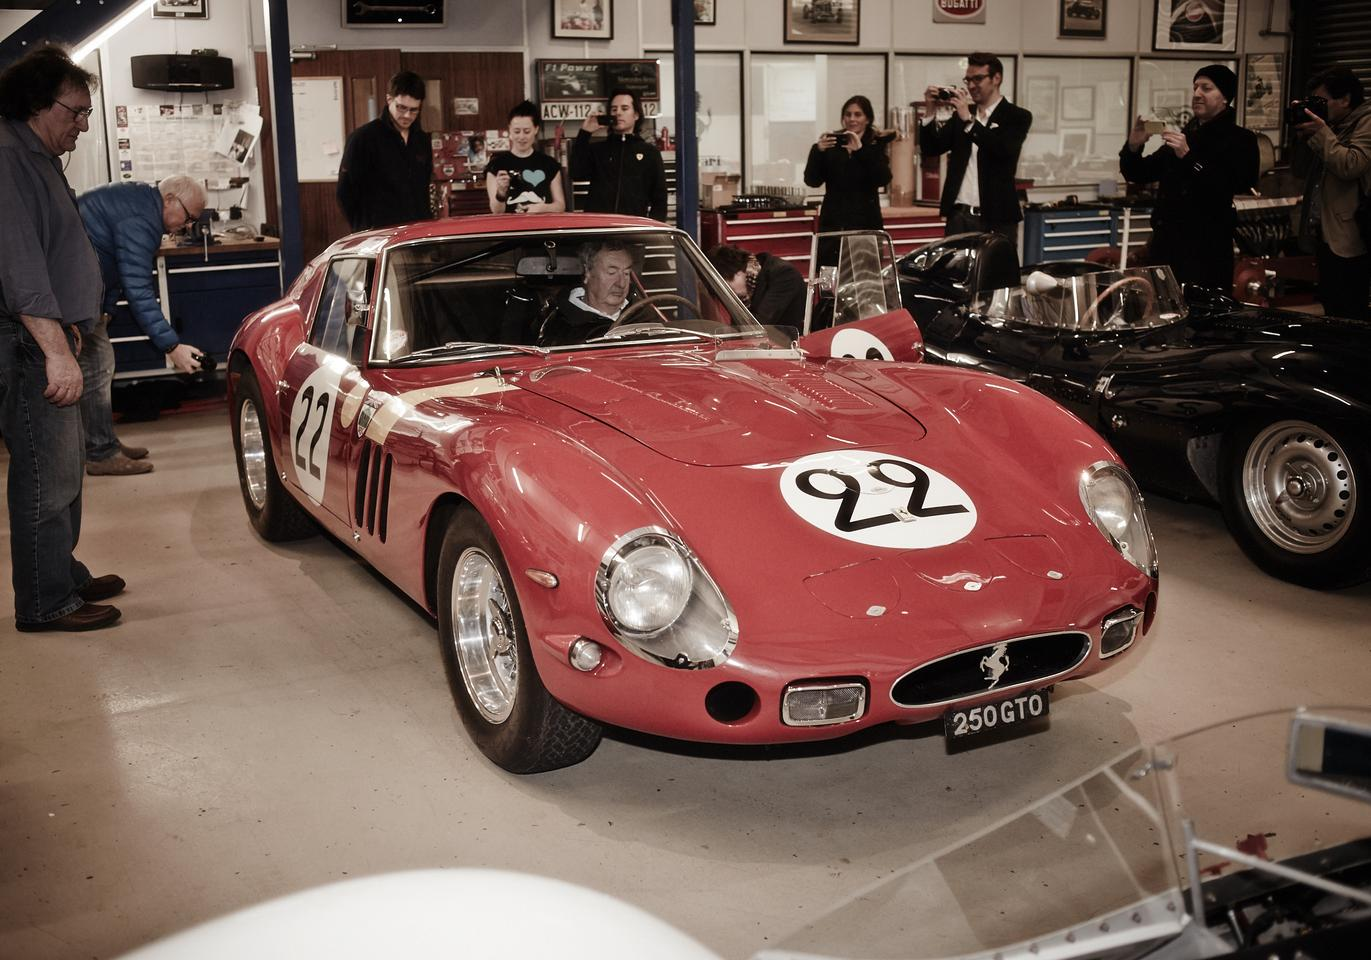 Nick Mason was originally known as the drummer in groundbreaking musical ensemble Pink Floyd. These days he's also well known for his automotive enthusiast status and as the owner of a Ferrari 250 GTO.